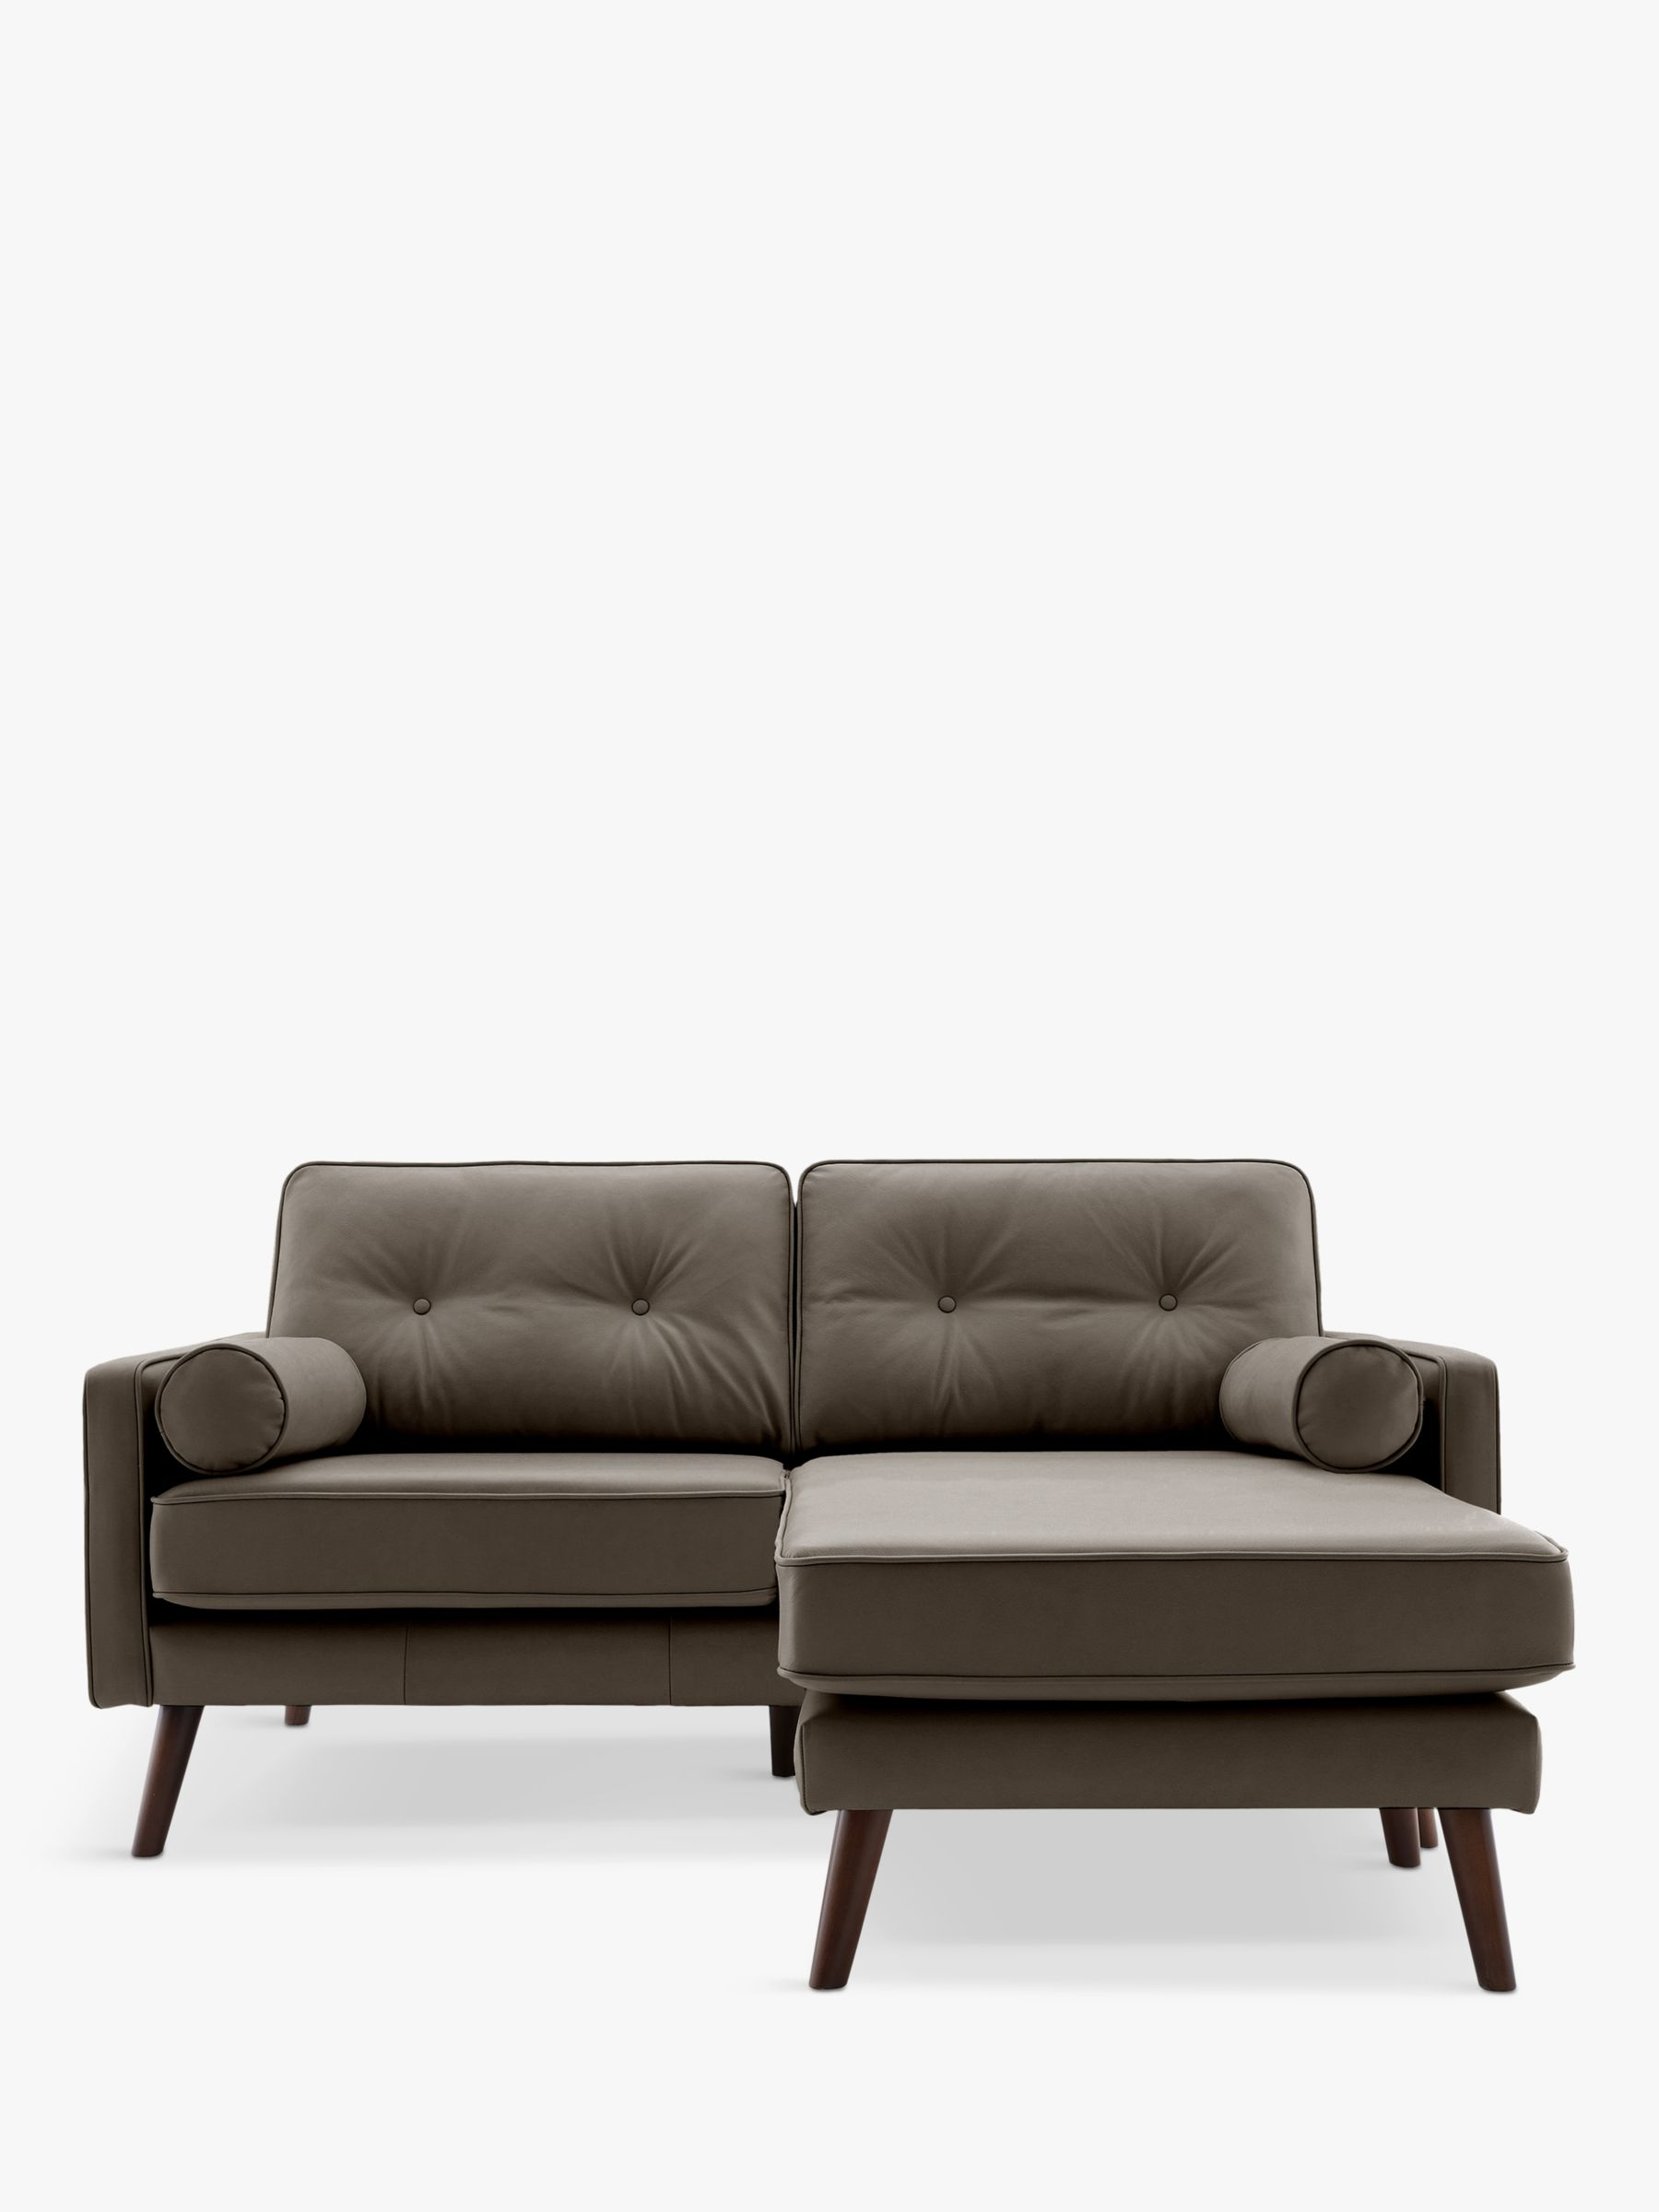 G Plan Vintage G Plan Vintage The Sixty Five Medium 2 Seater Chaise End Leather Sofa